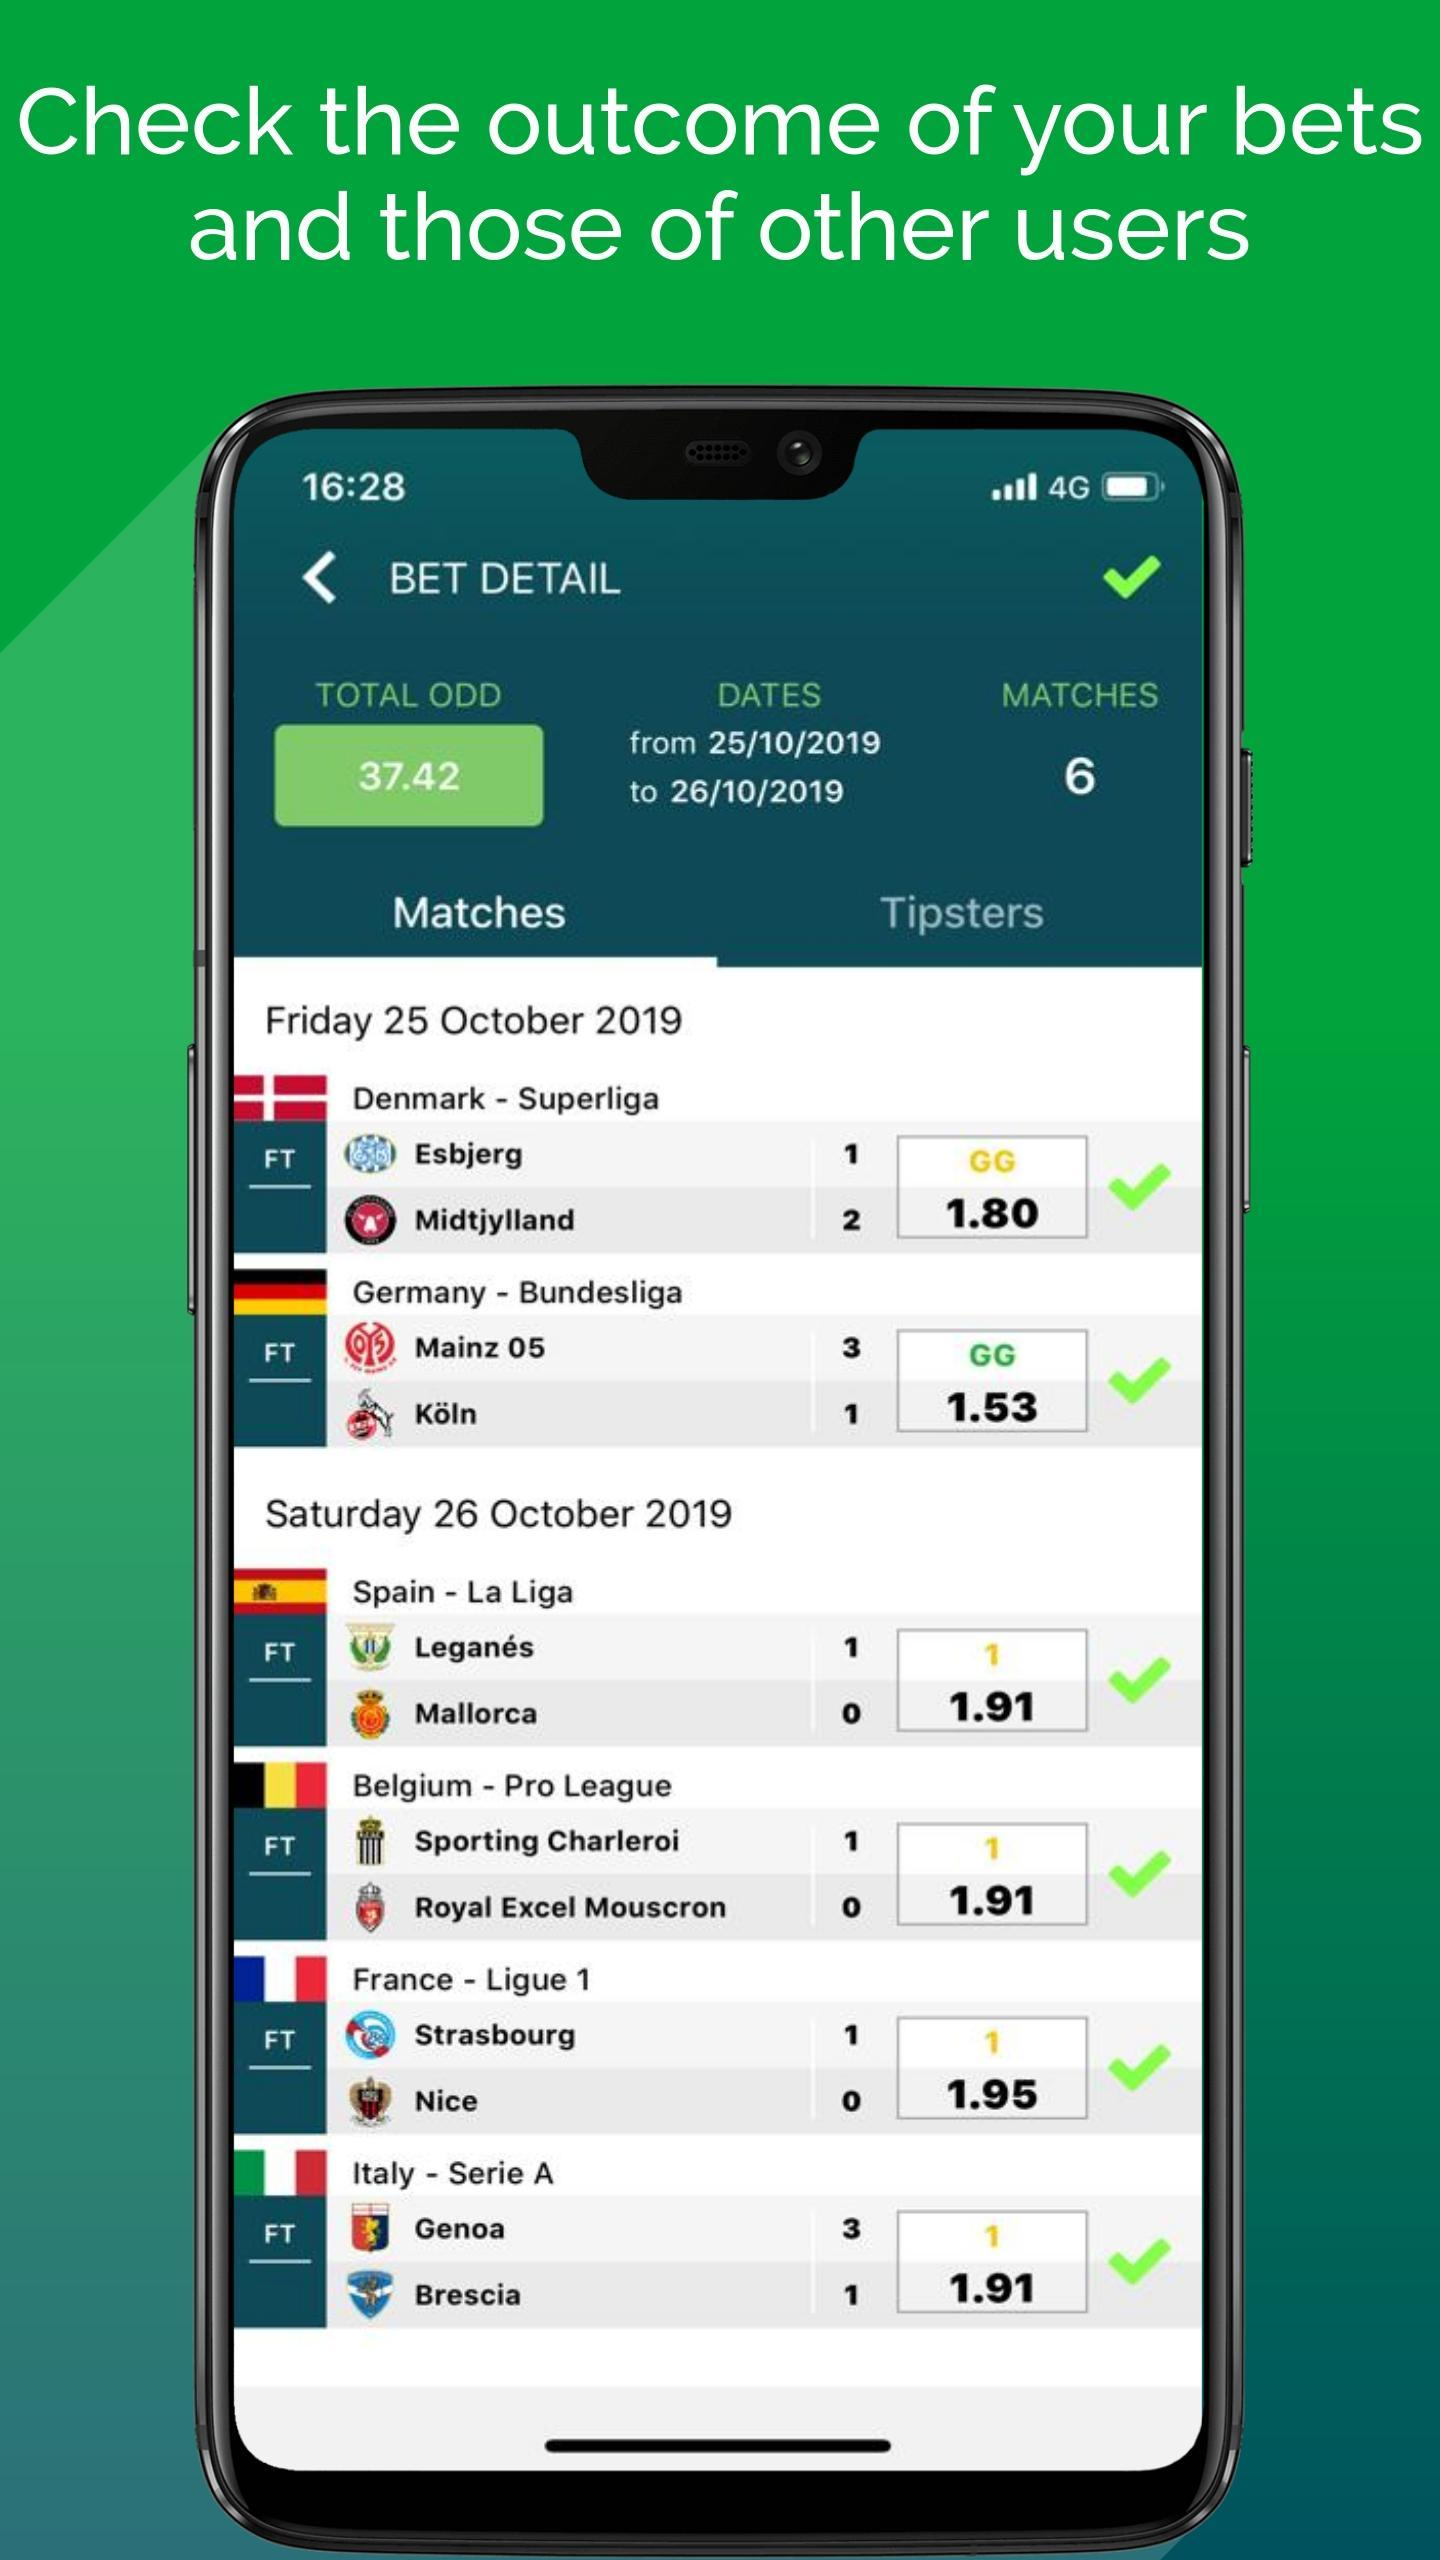 Mouscron vs charleroi betting expert sports binary options trading system scams from nigeria